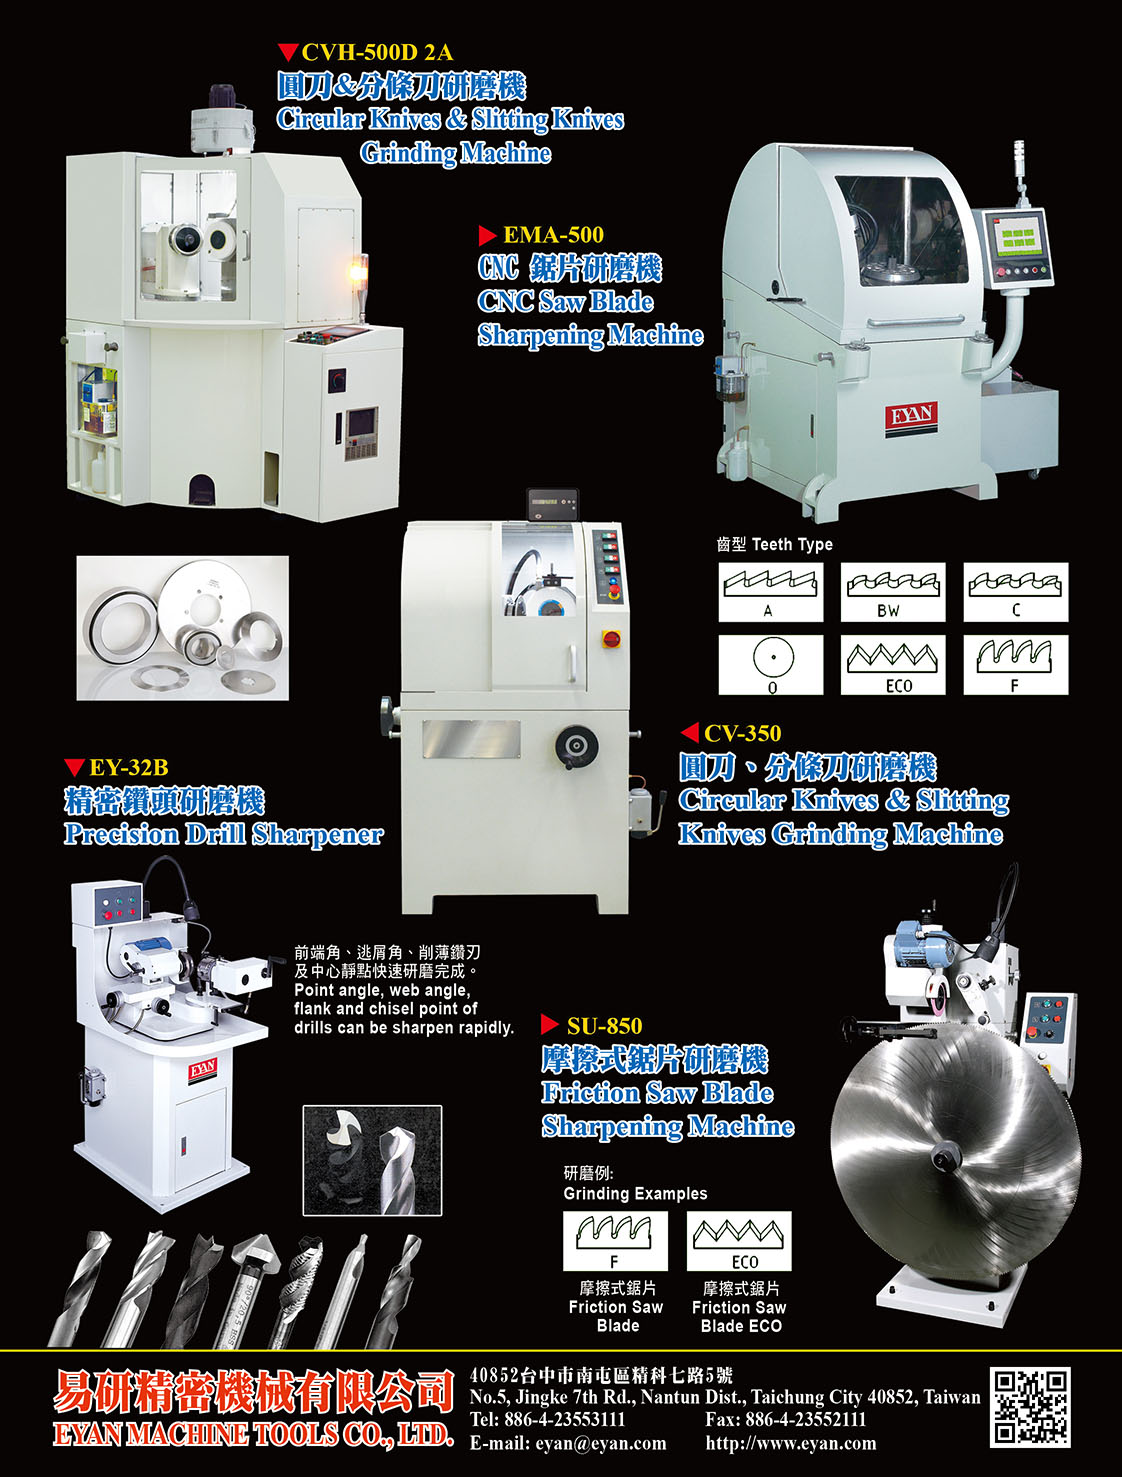 EYAN MACHINE TOOLS CO., LTD.